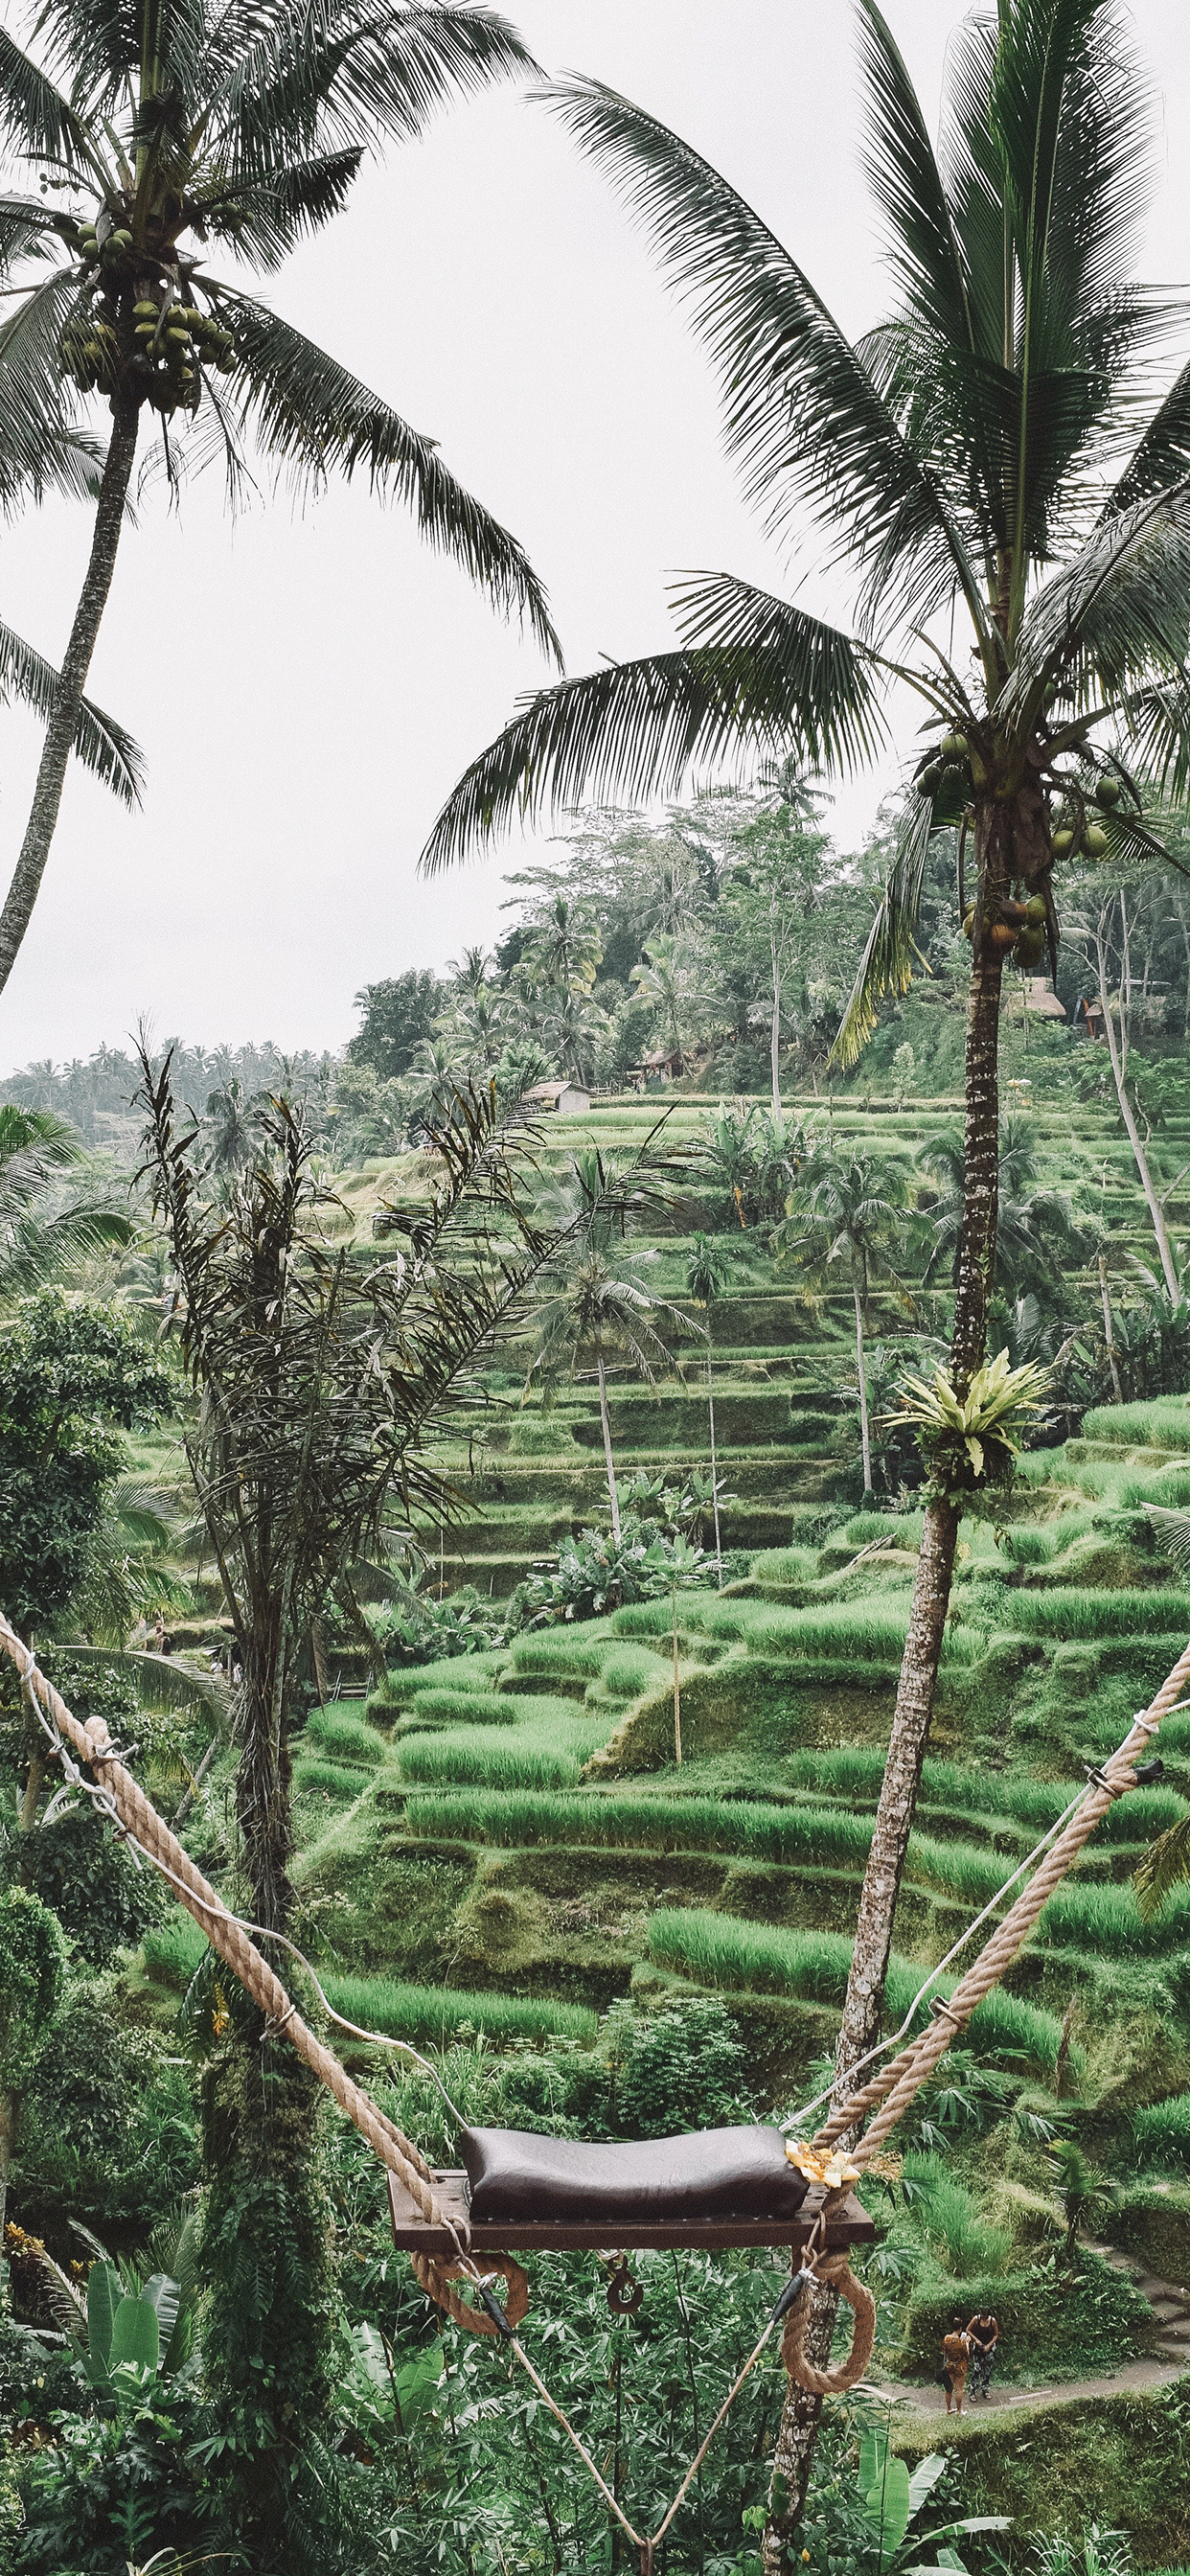 iPhone wallpapers ubud indonesia swing Fonds d'écran iPhone du 09/05/2019